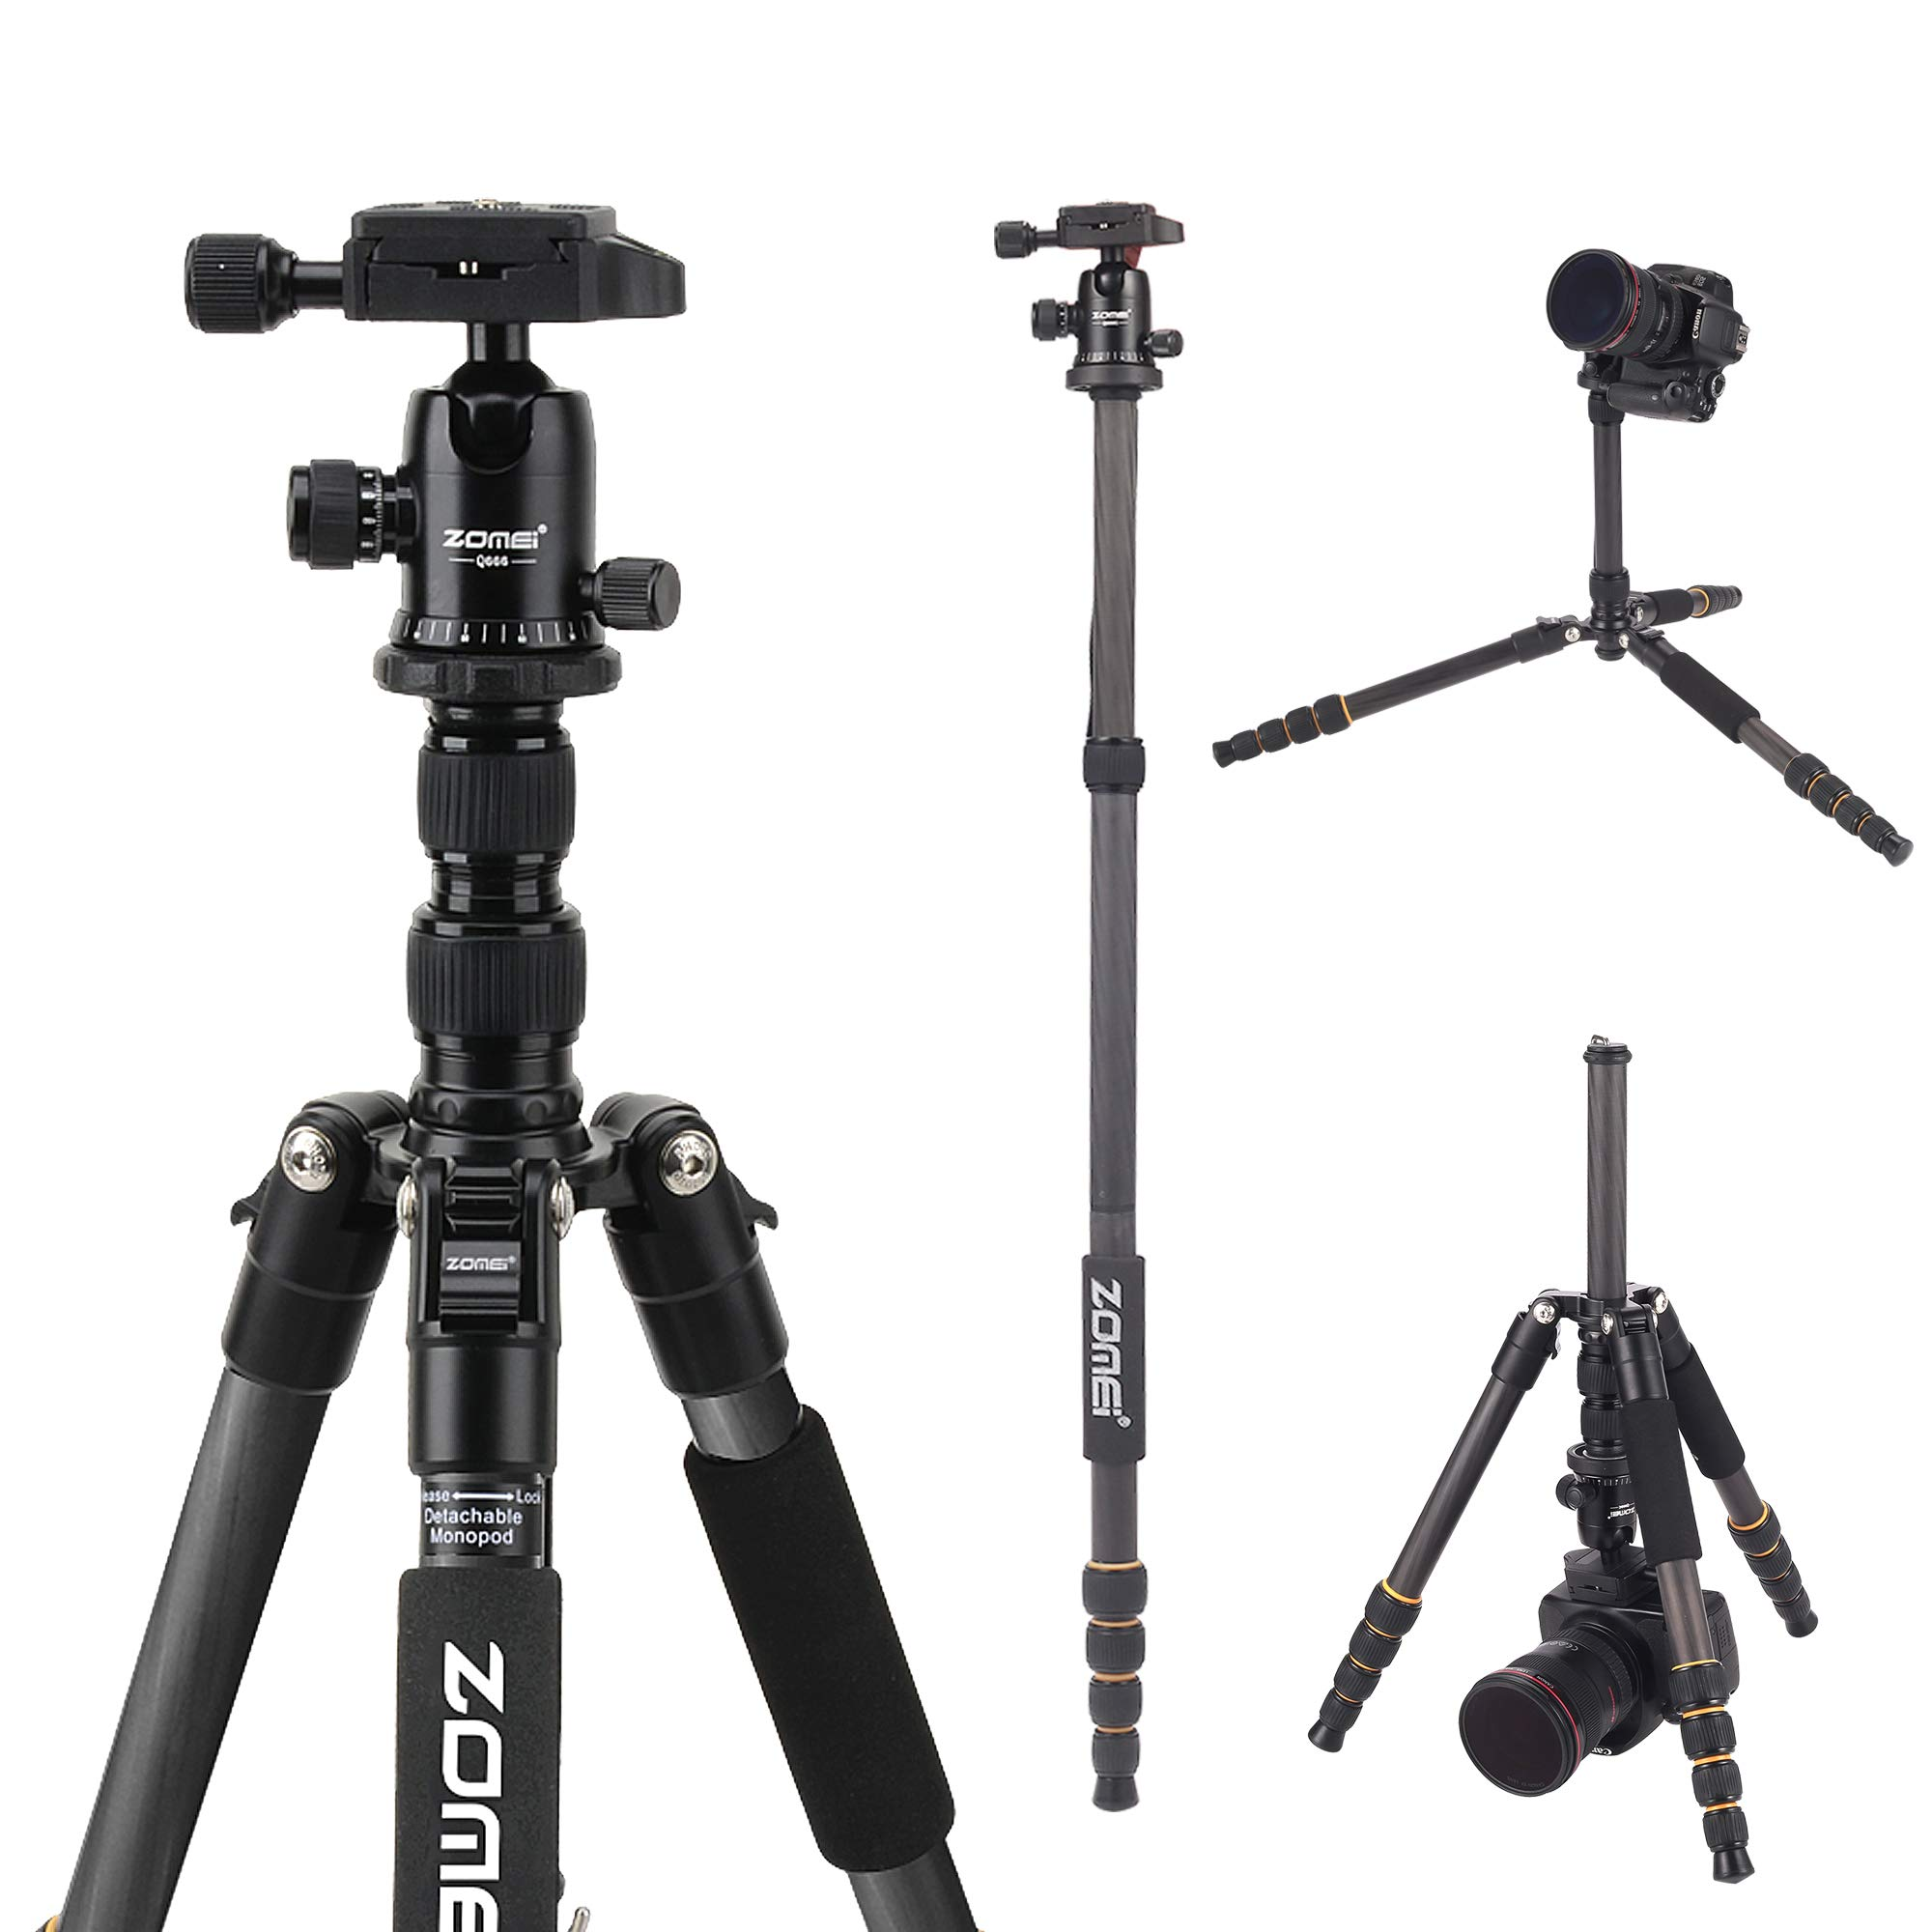 YESSBON ZOMEI Carbon Fiber Q666C Tripod Heavy Duty Lightweight Travel with 360 Degree Ball Head Compact for Canon Sony, Nikon, Samsung, Panasonic, Olympus, Kodak, Fuji, Cameras and DSLR by YESSBON